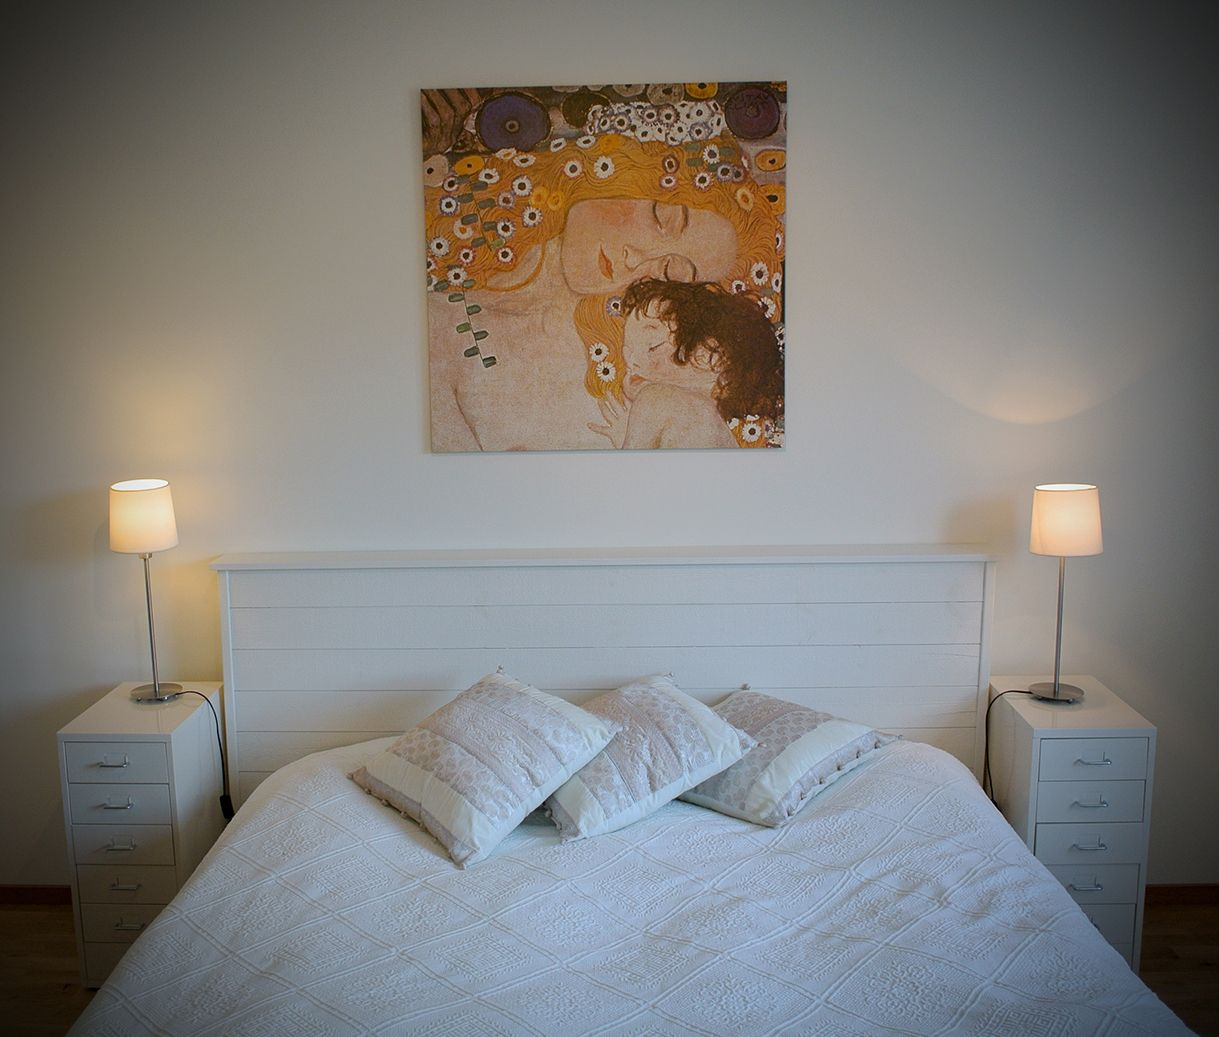 Tongue And Groove Headboard Google Search Bedroom Pinterest Bedrooms